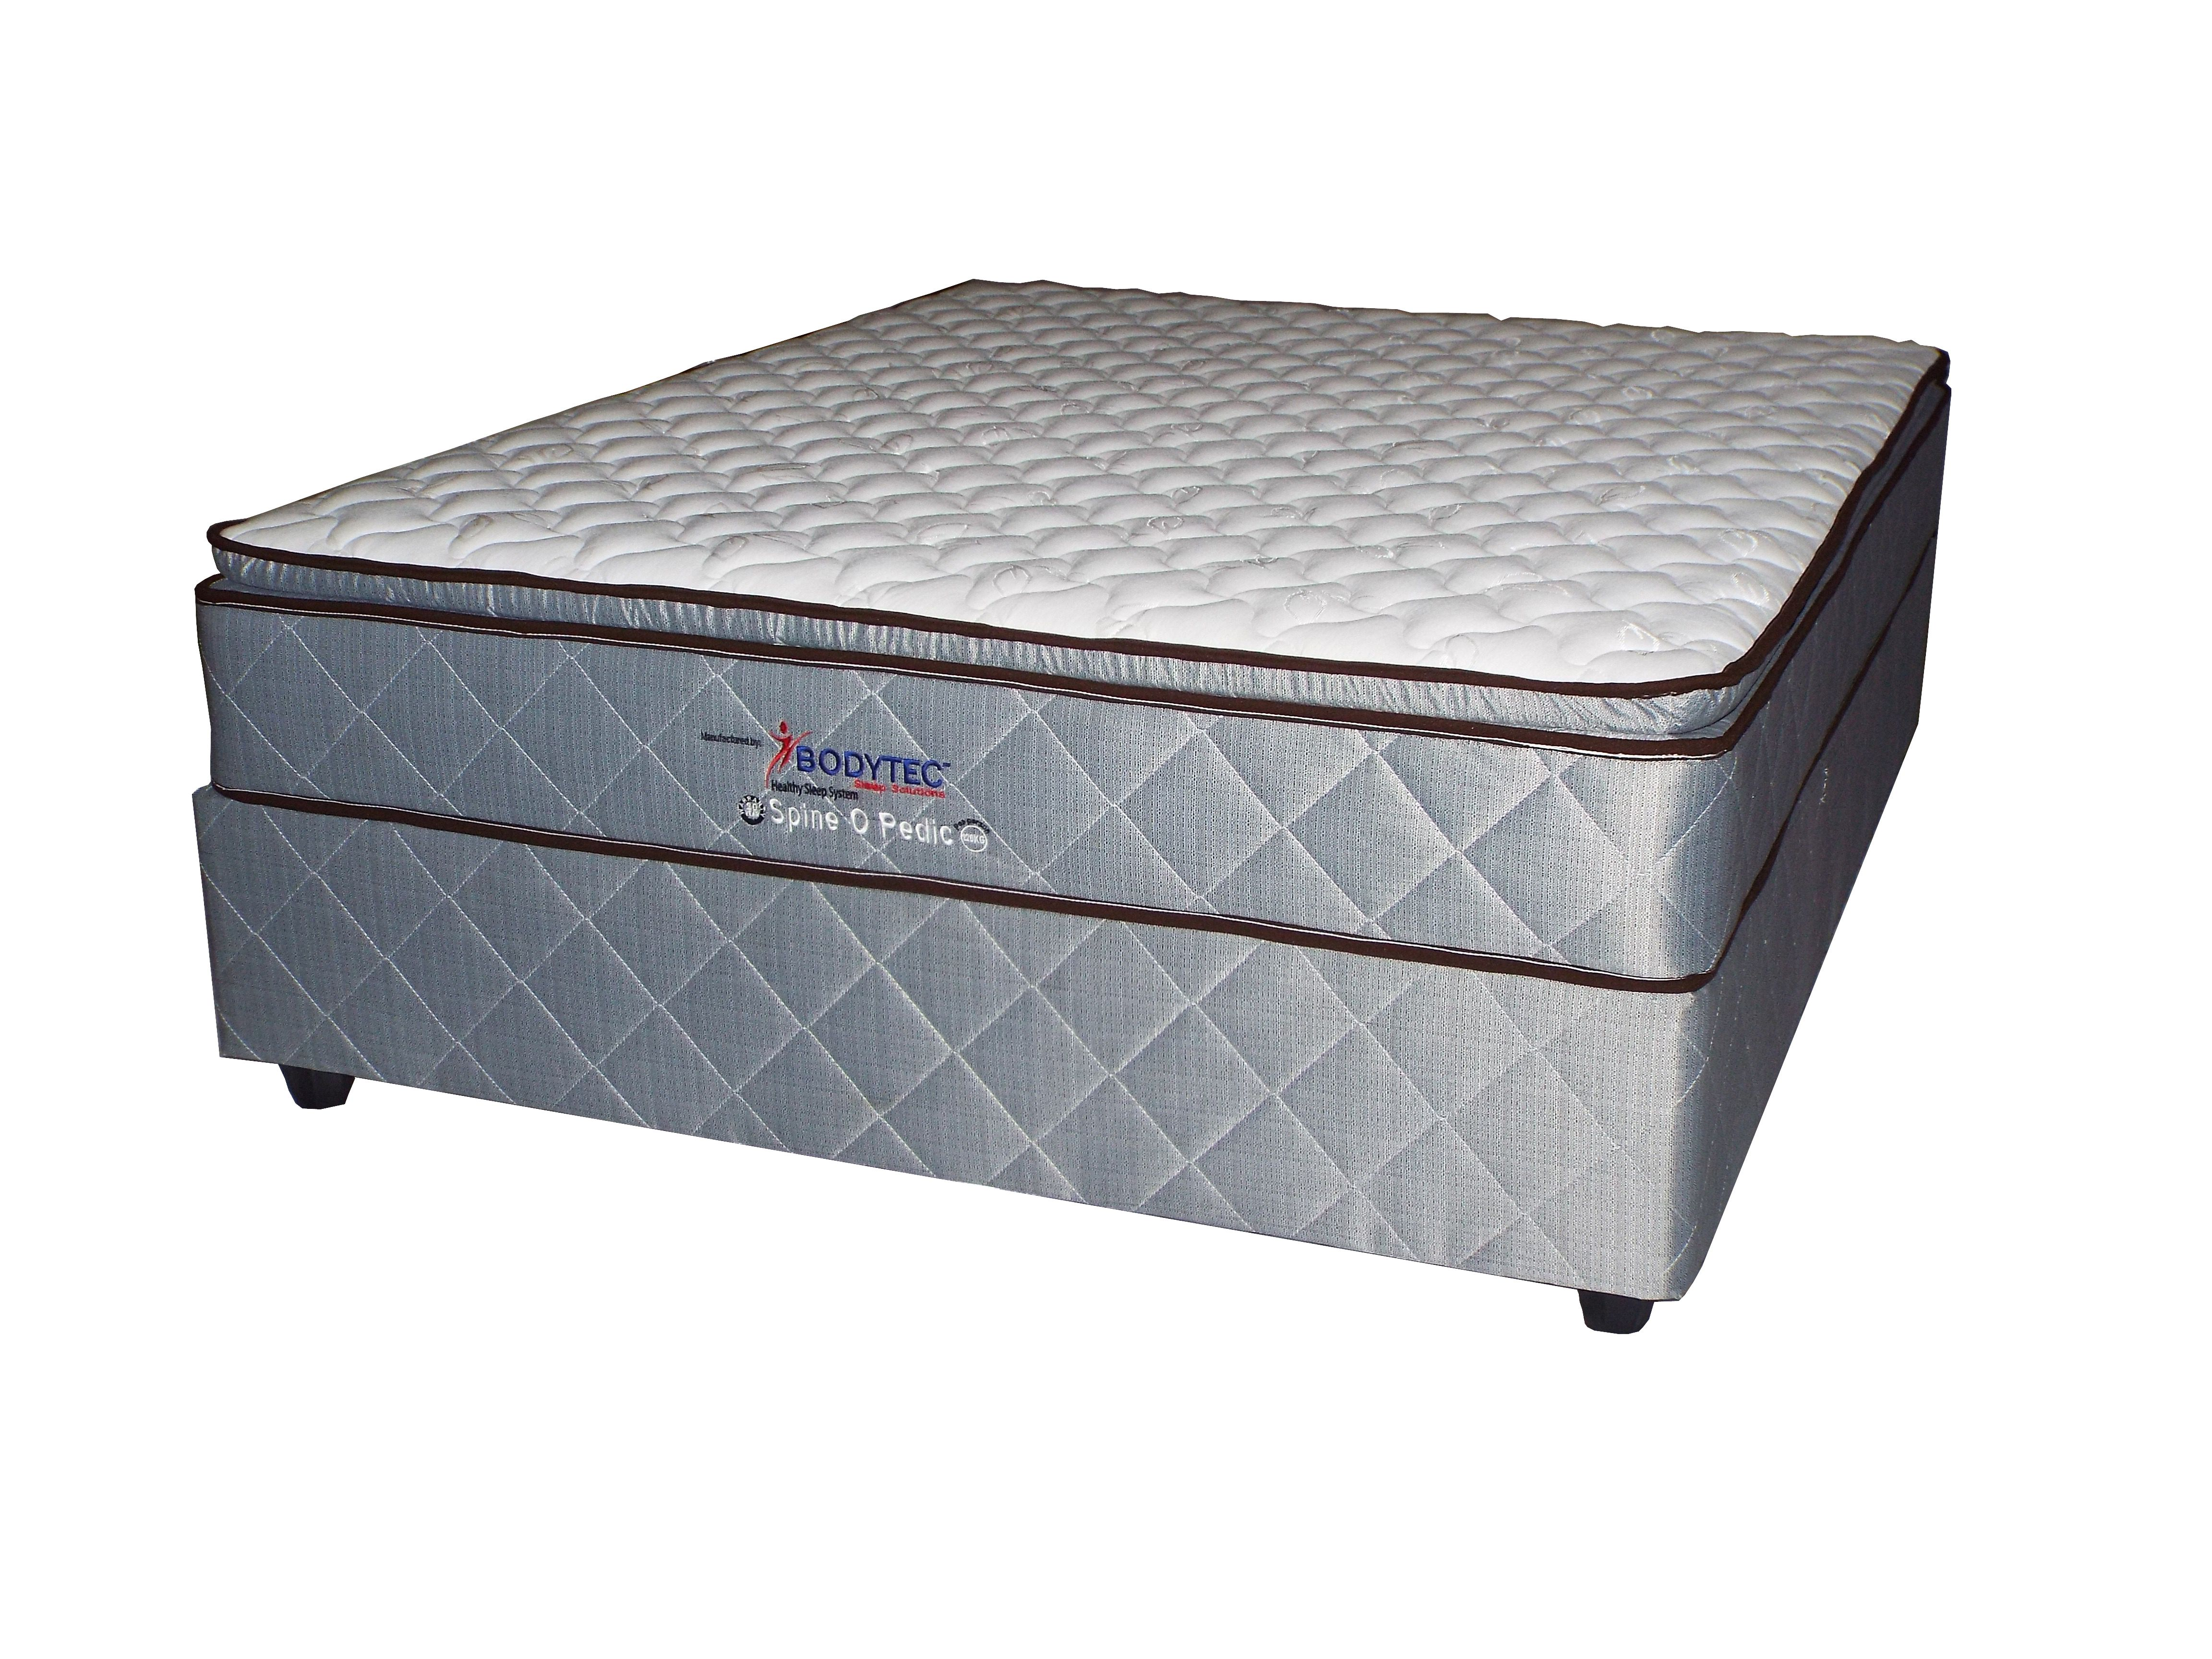 Beds for sale near me Beds for sale, Memory foam beds